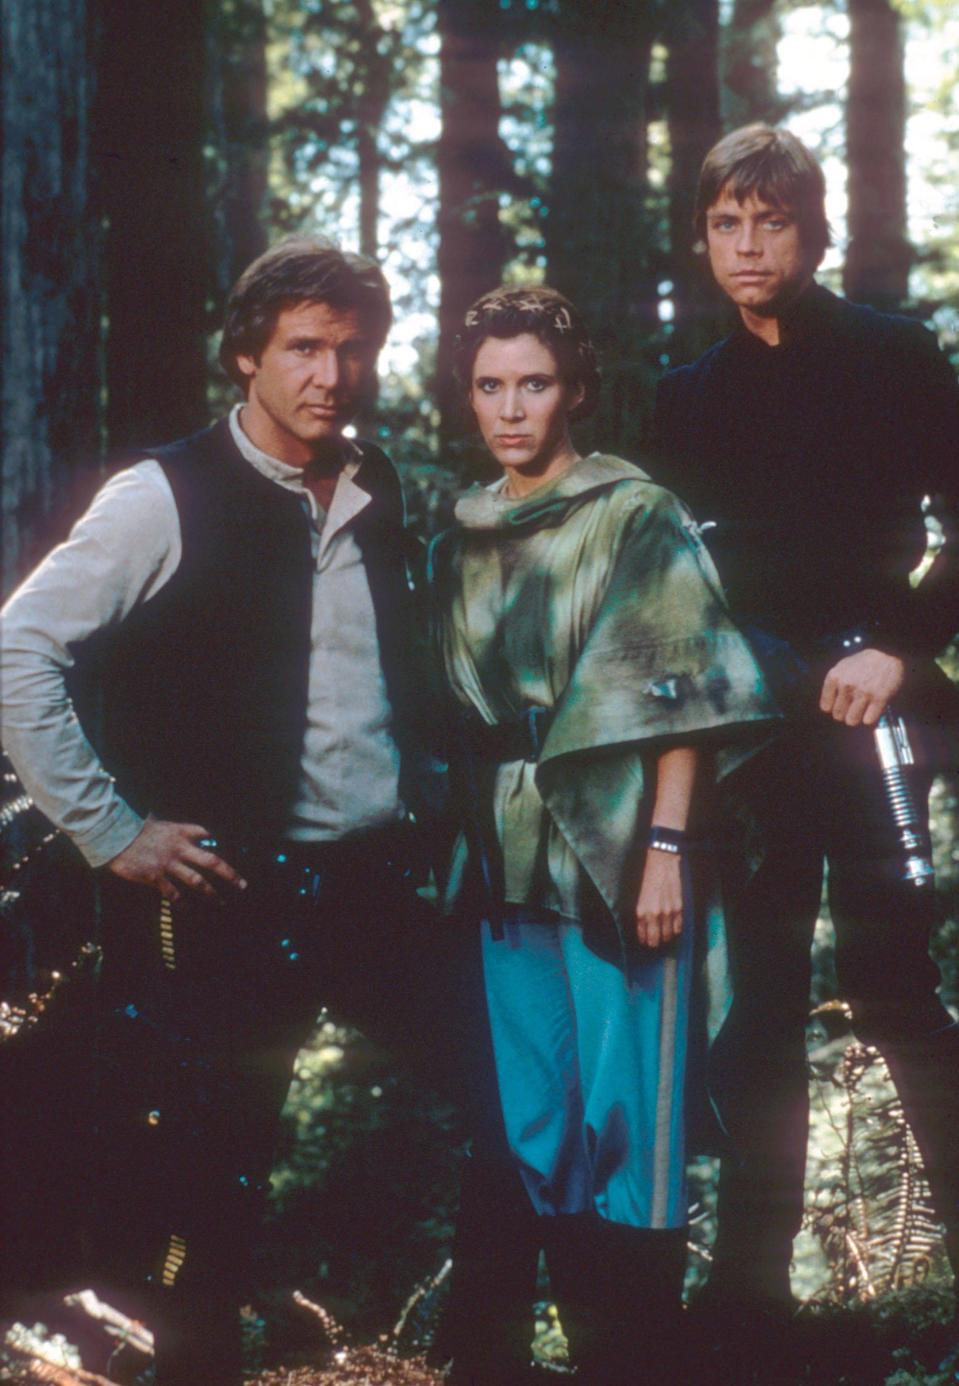 Harrison Ford as Han Solo, Carrie Fisher as Princess Leia, and Mark Hamill as Luke Skywalker in a promotional shot for <em>Return of the Jedi.</em> (Photo: Mary Evans/Lucasfilm/Ronald Grant/Everett Collection)